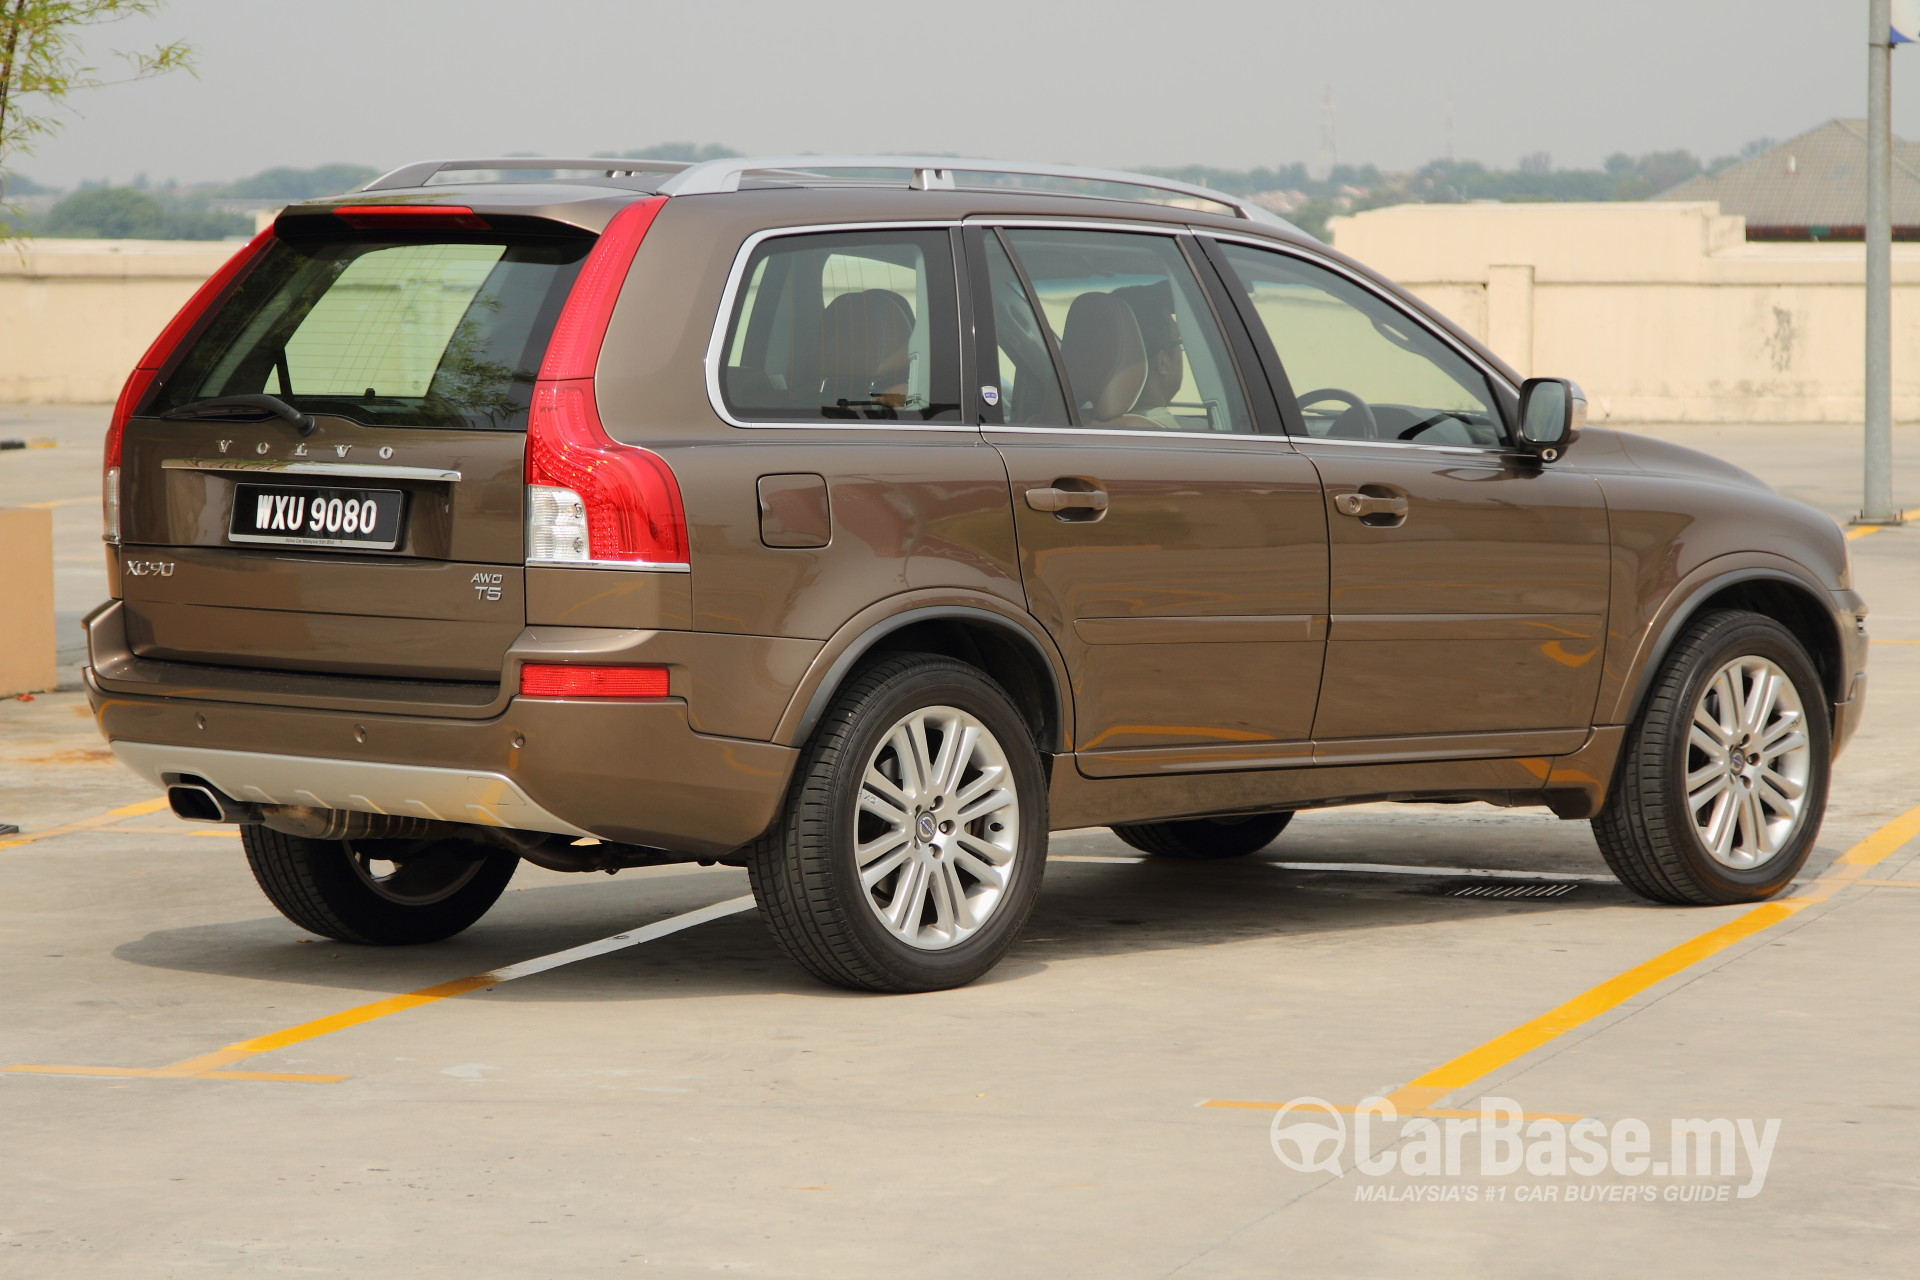 Volvo XC90 Mk1 Facelift (2008) Exterior Image #7100 in Malaysia - Reviews, Specs, Prices ...